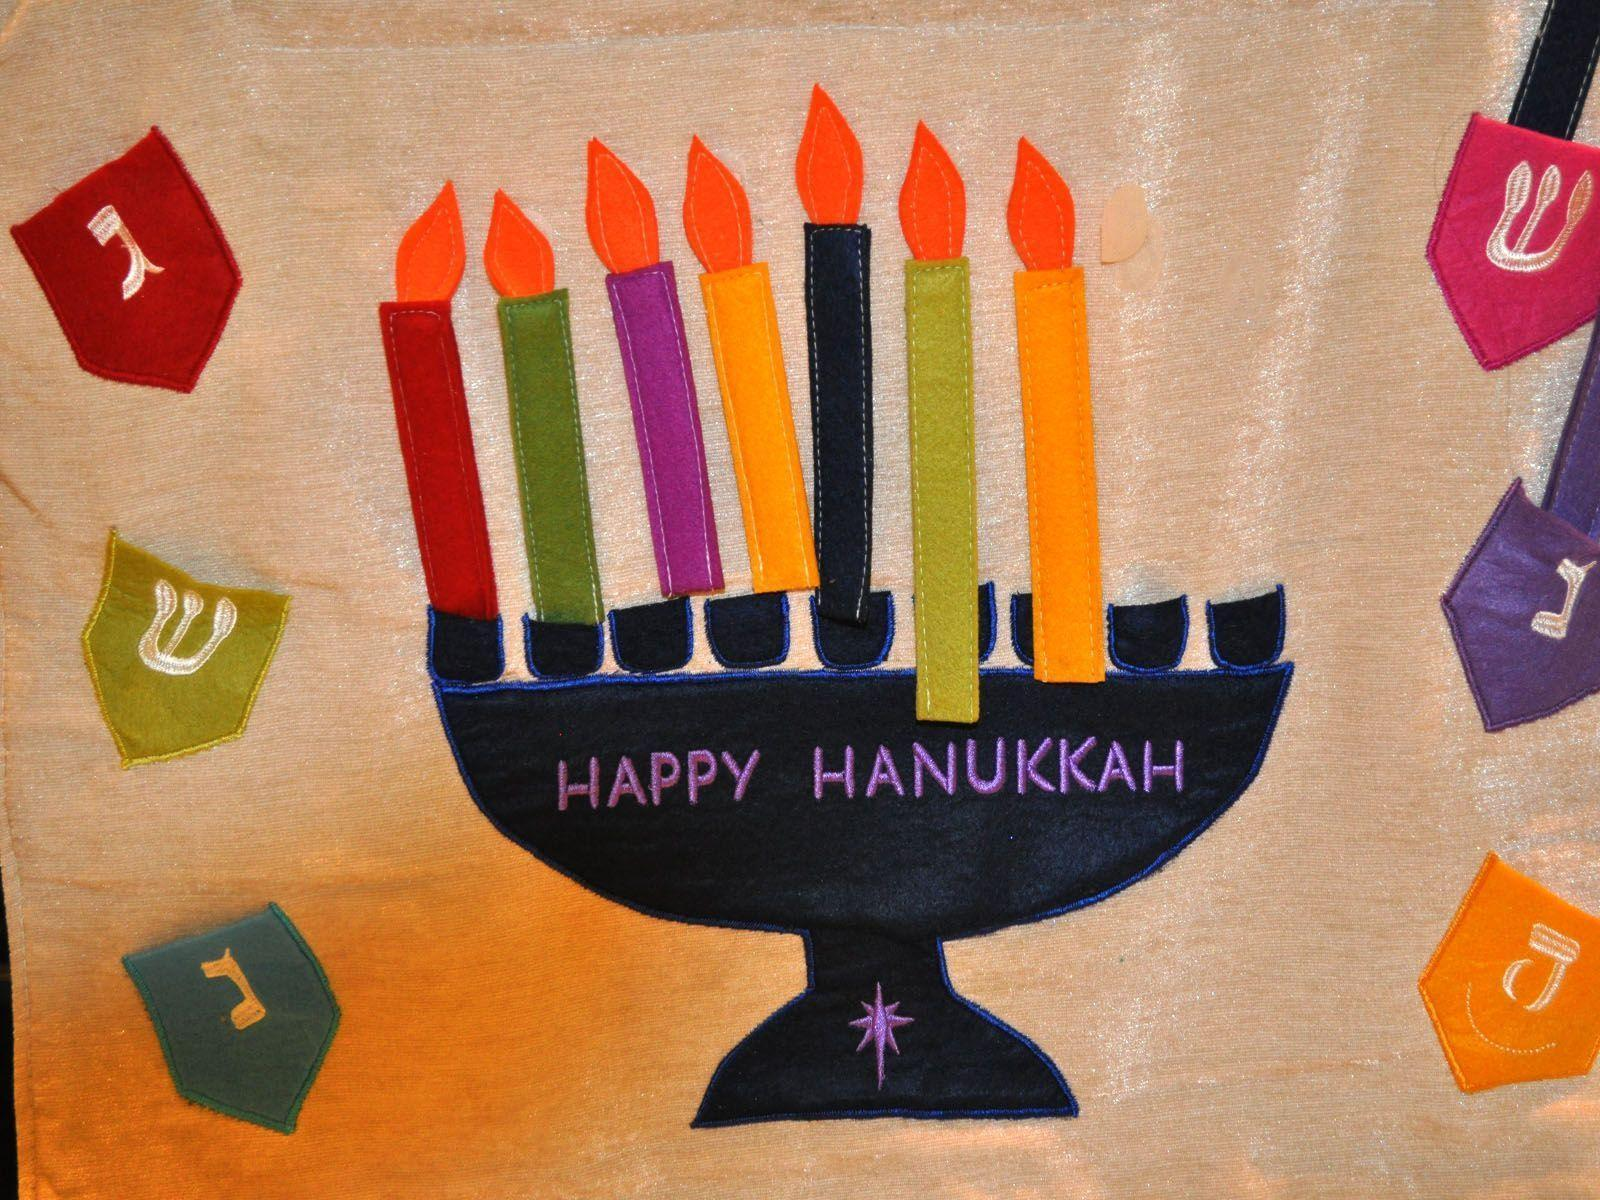 Free Hannukah wallpaper | Hanukkah wallpapers